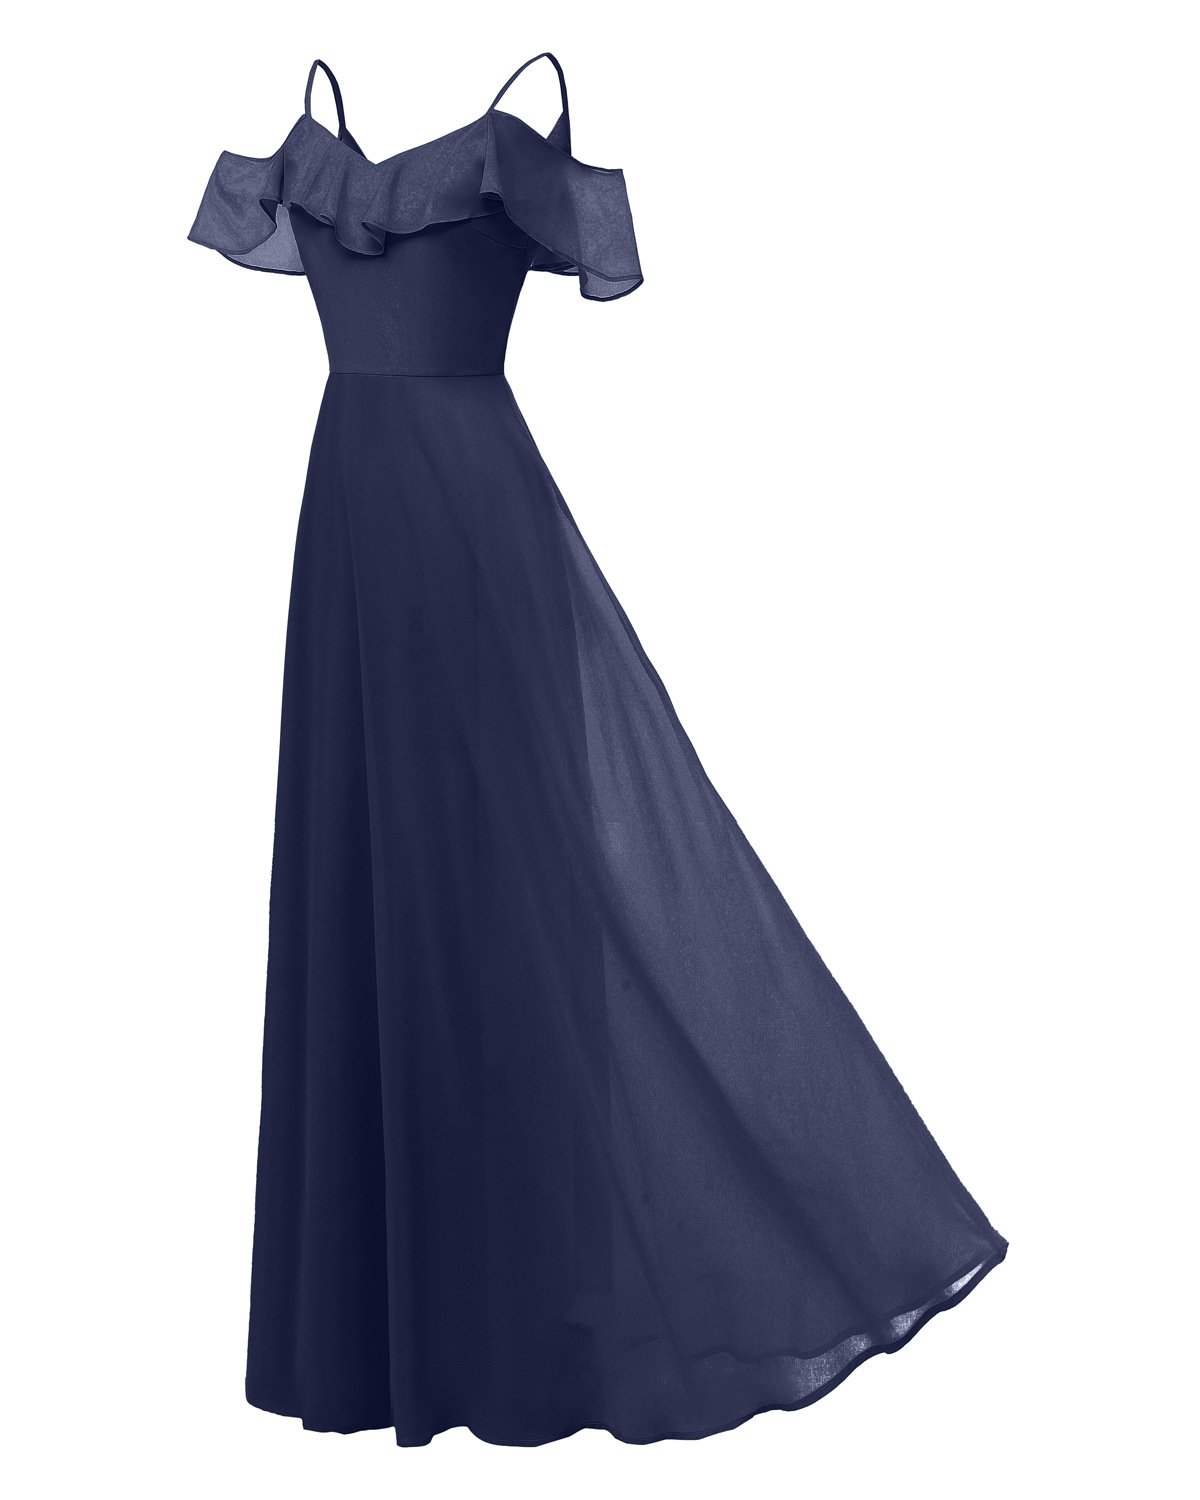 0cbcac6dd28 Women Chiffon Maxi Dress Ruffle Spaghetti Straps Off Shoulder Long Evening  Party Bridesmaid Dress navy blue